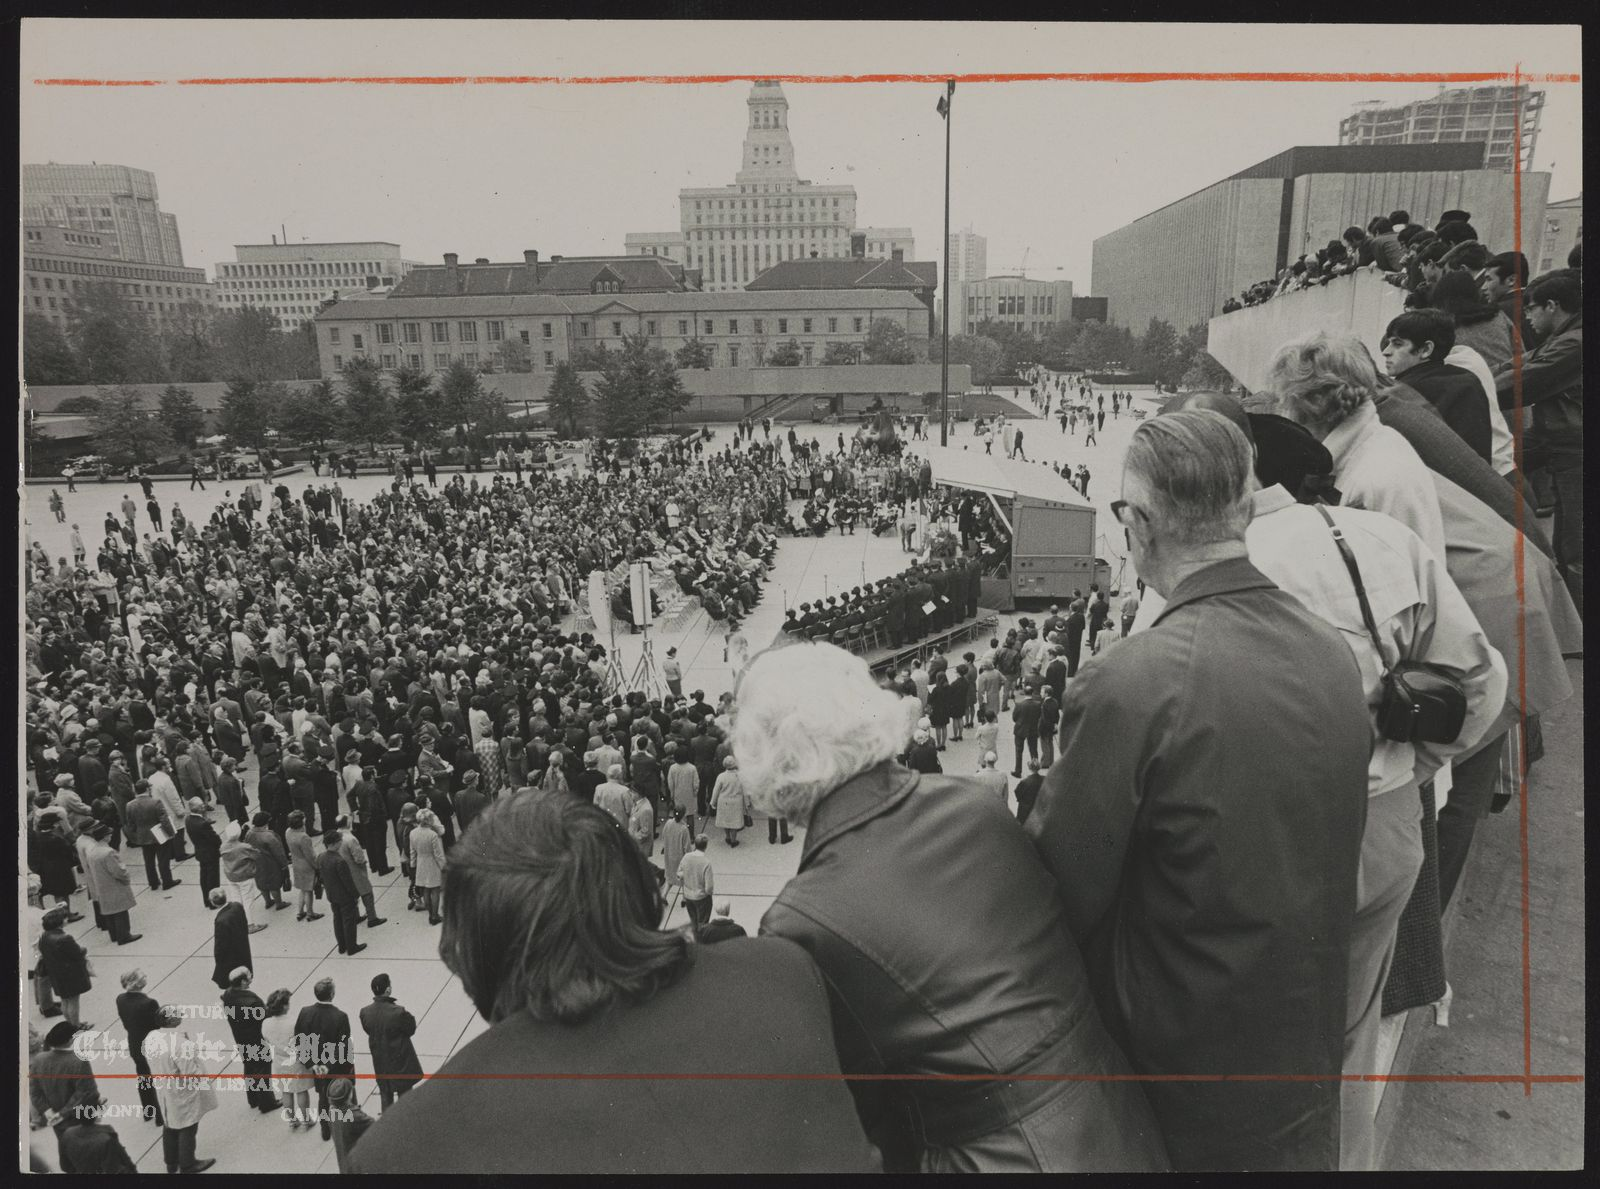 Pierre LAPORTE Montreal; Politician, killed by FLQ. Mourners in Nathen Phillips Square